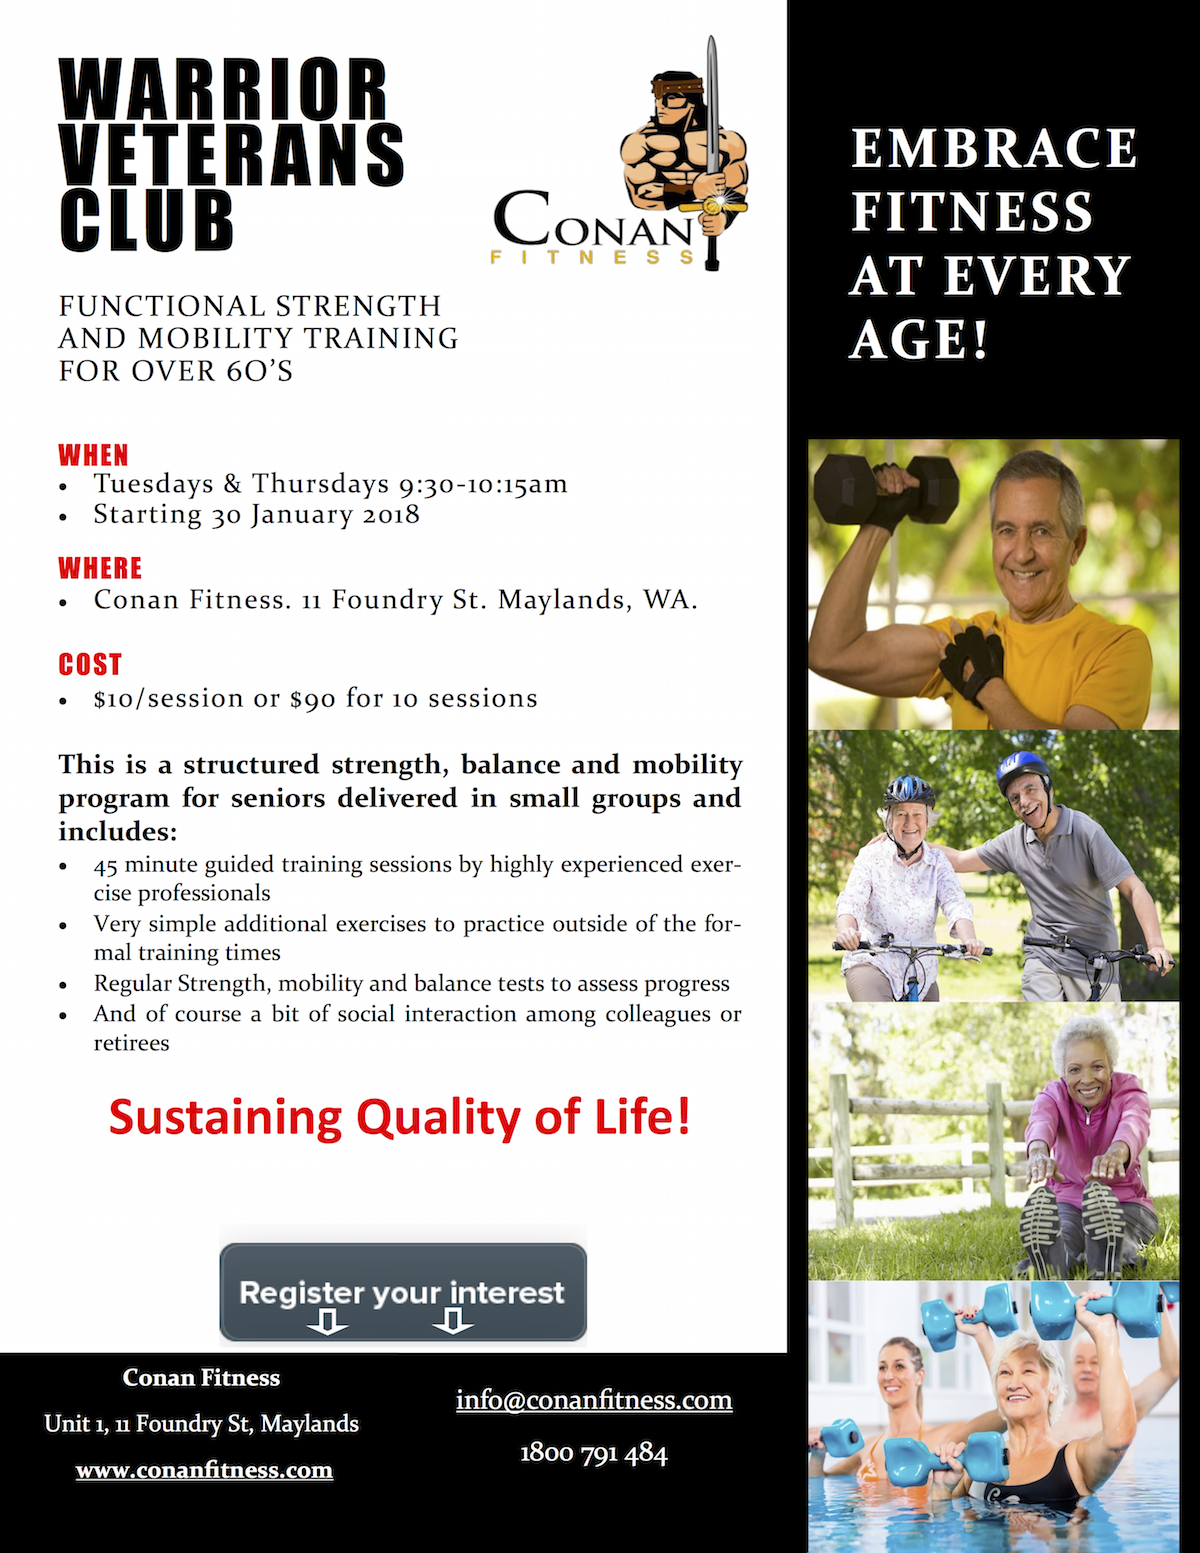 functional strength and mobility training for over 60's